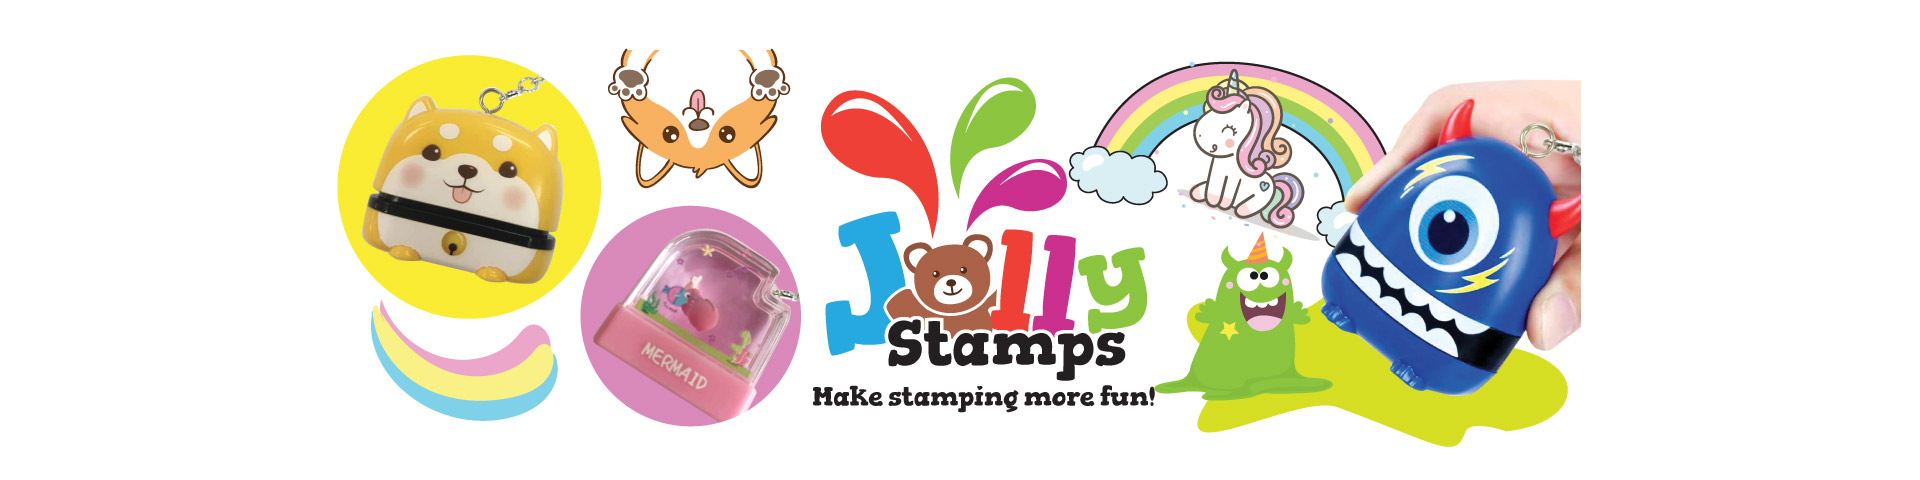 Jolly stamp